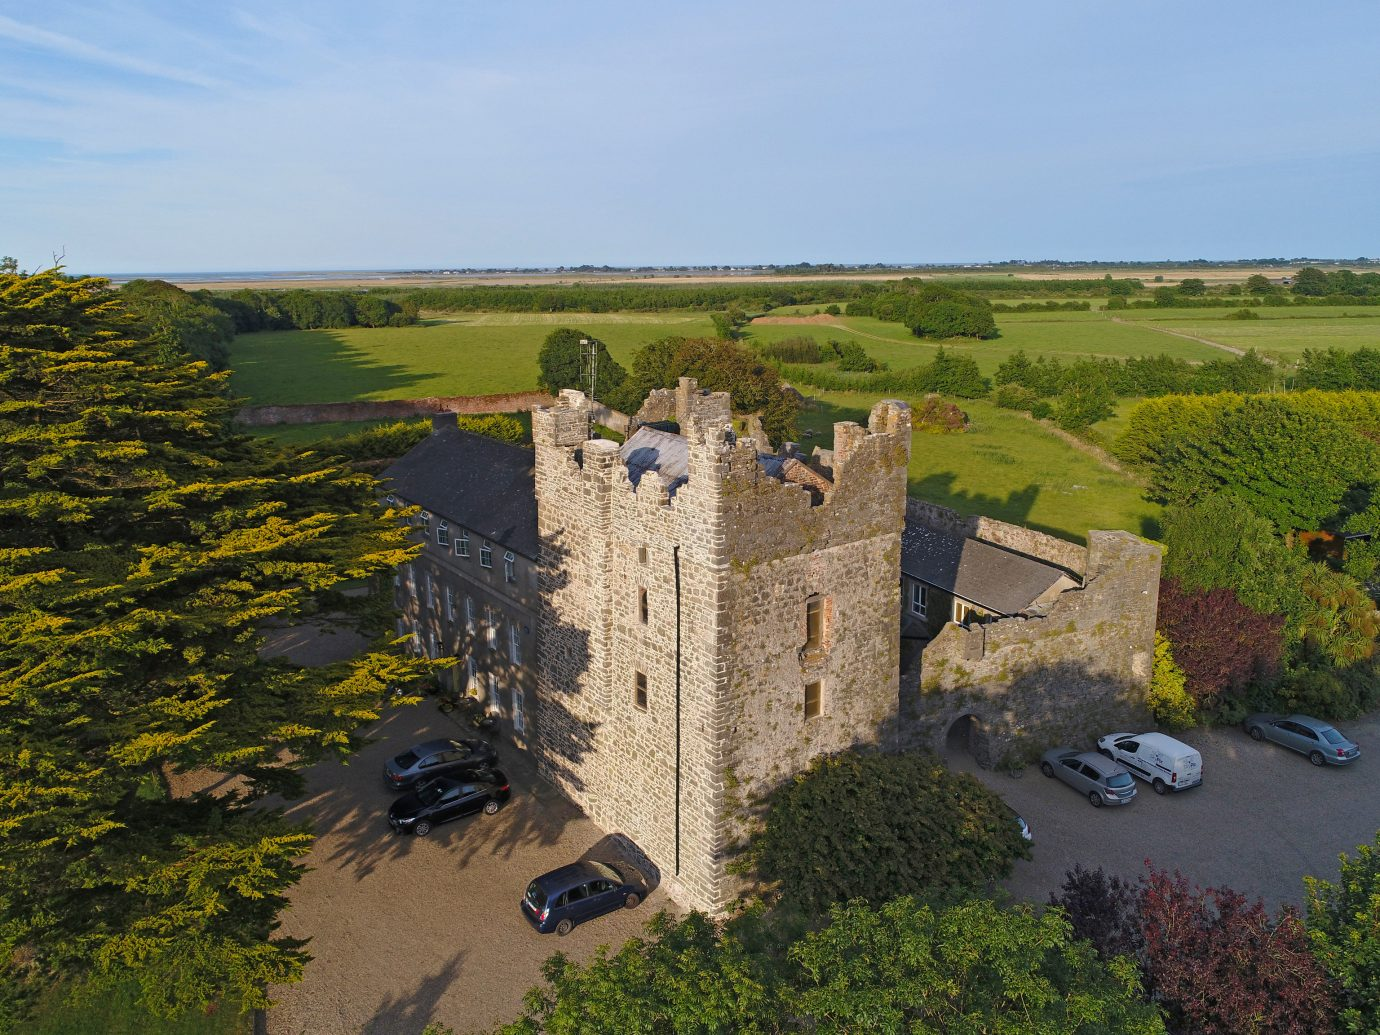 europe Hotels Ireland sky tree aerial photography castle estate Village château plant rural area stately home national trust for places of historic interest or natural beauty building fortification landscape bird's eye view field grass historic site